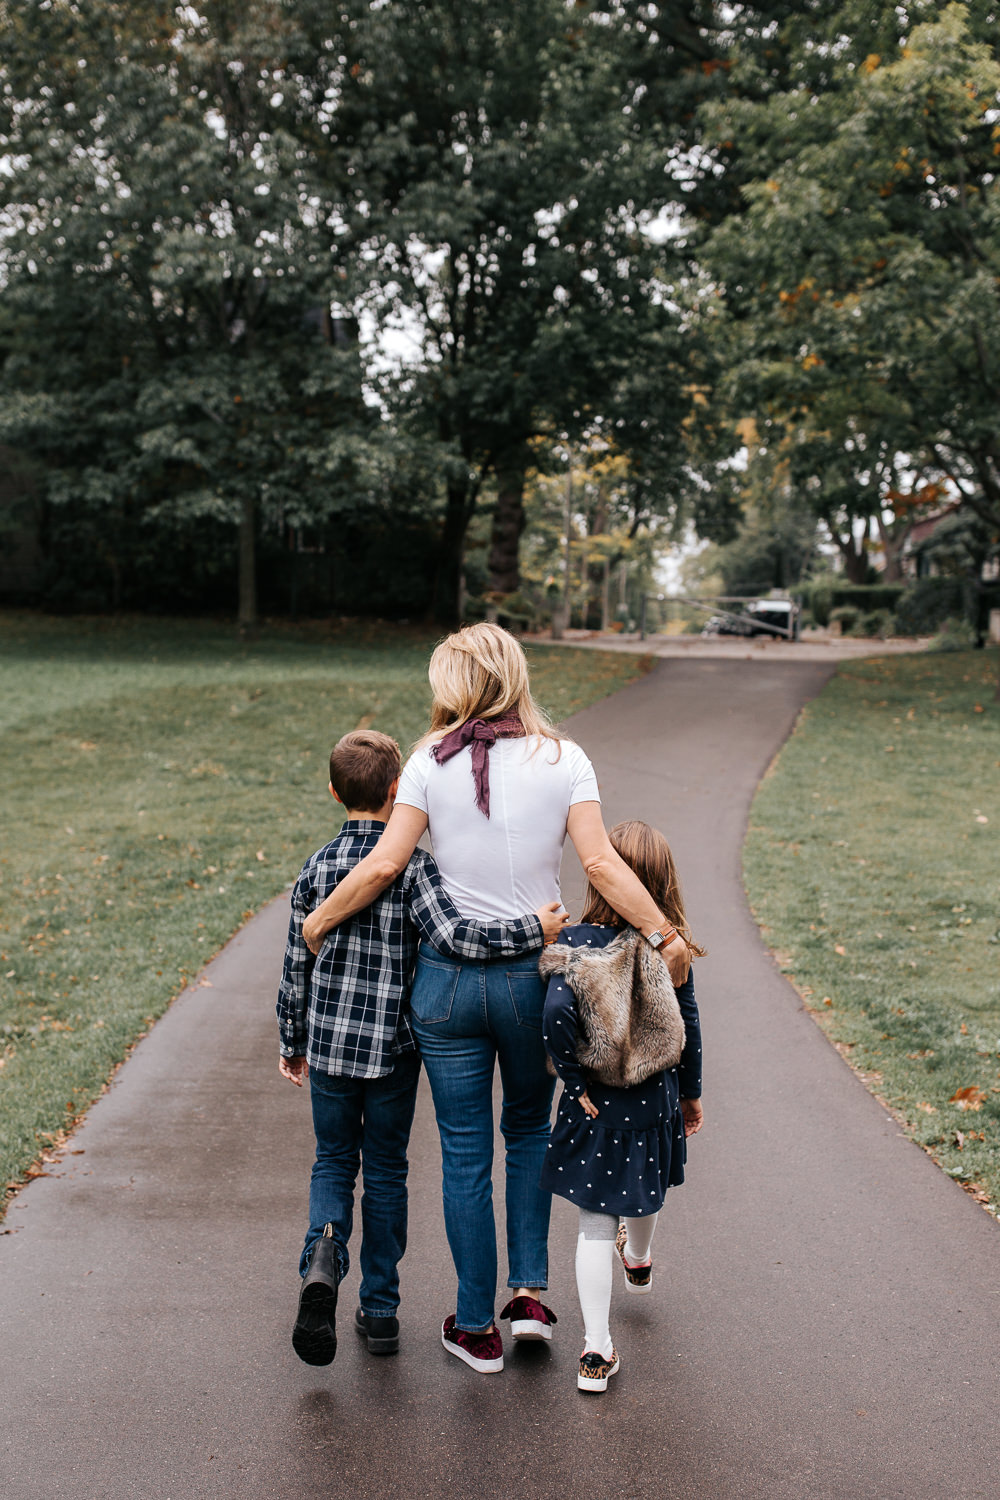 mom walking down paved path at city park, arms around 9 year old son and 7 year old daughter as they stroll - Newmarket Lifestyle Photography